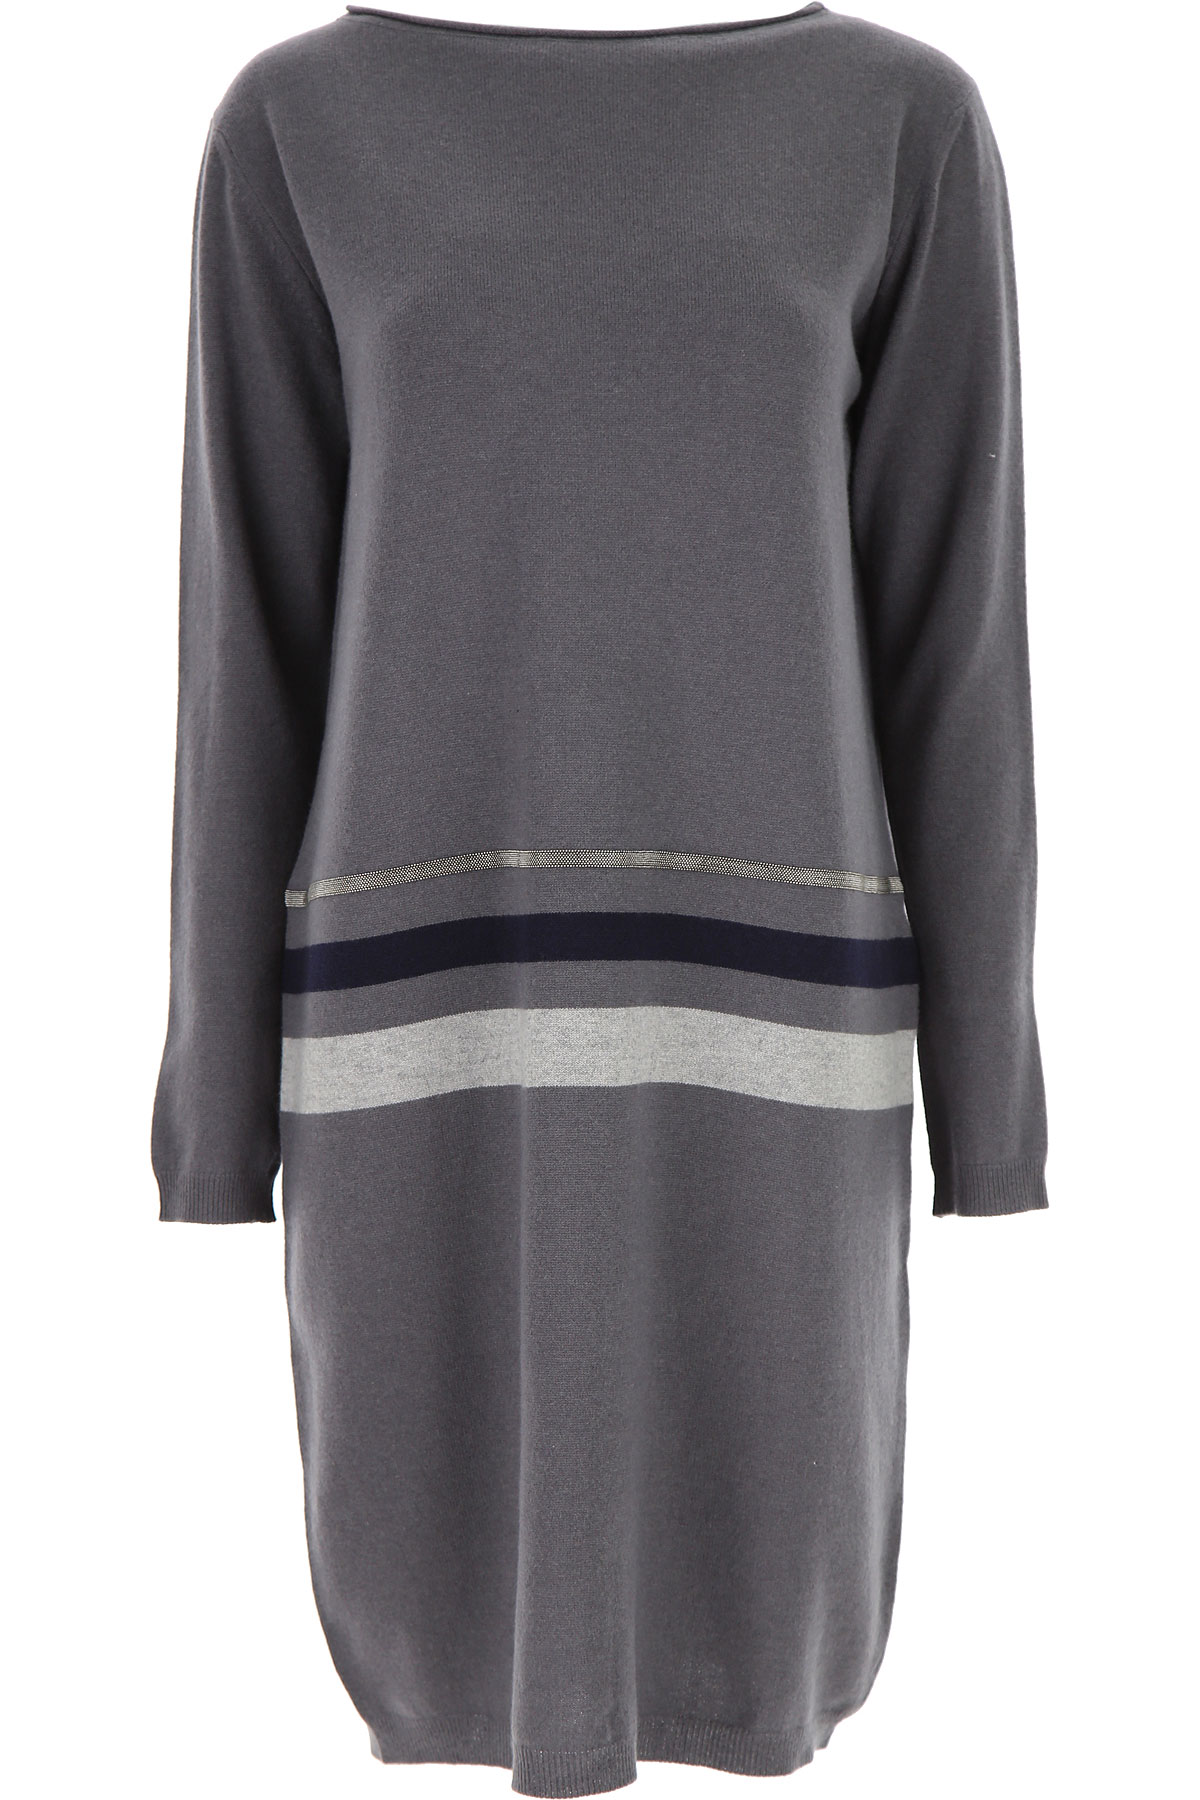 Fabiana Filippi Dress for Women, Evening Cocktail Party On Sale, antracite, Merinos Wool, 2019, 4 6 8